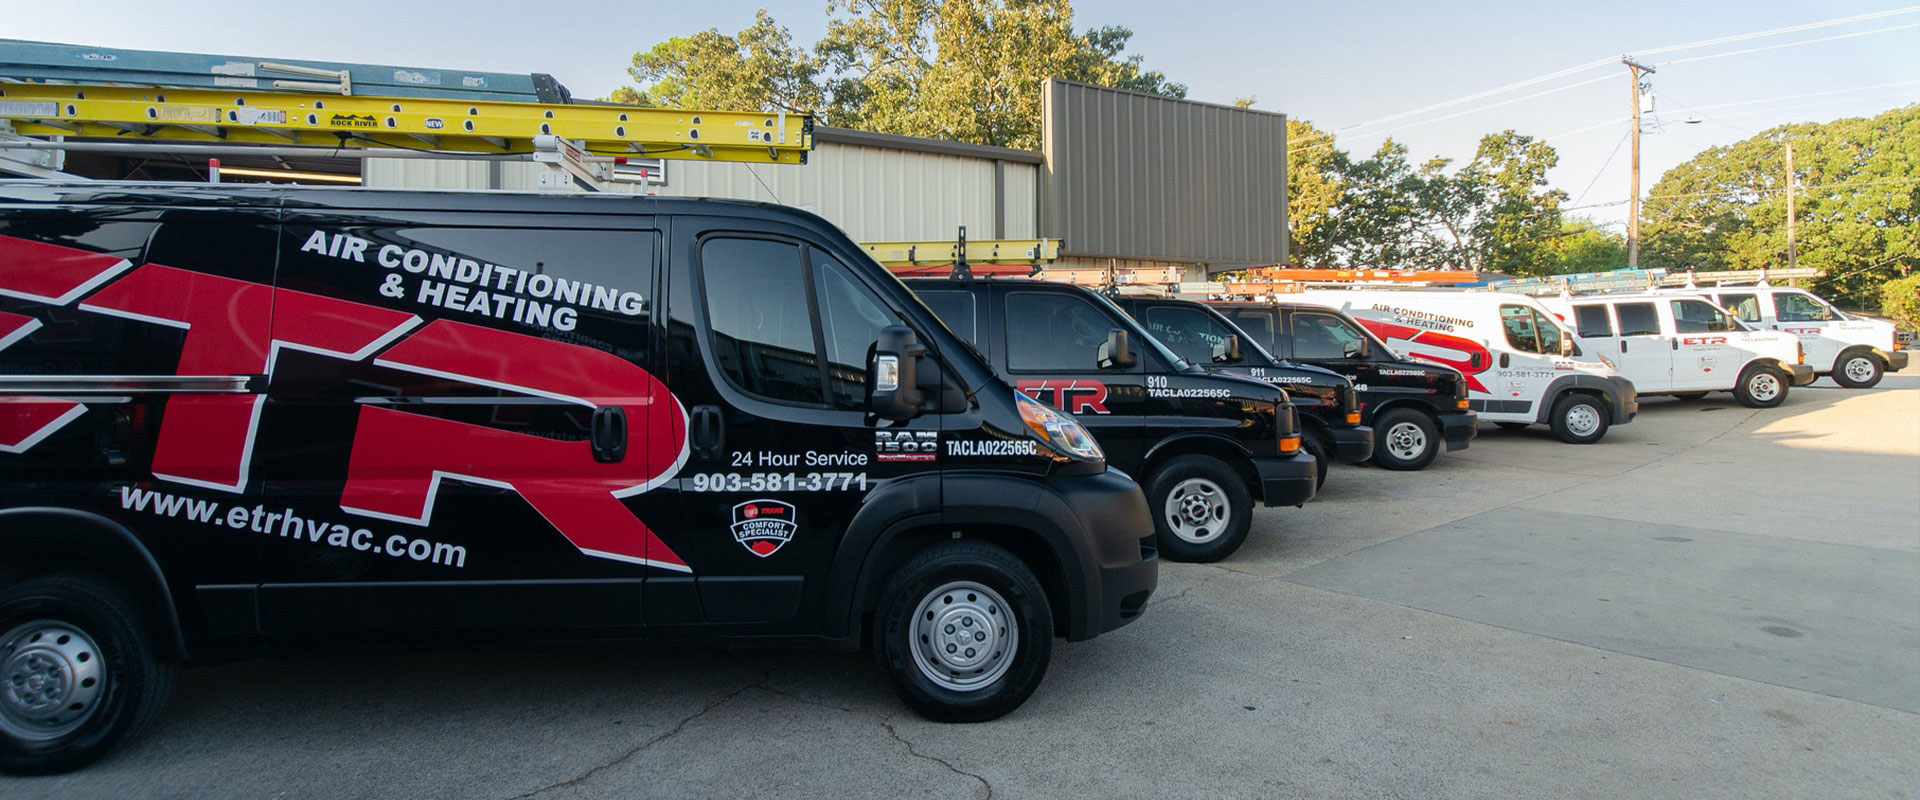 Fleet from ETR Air Conditioning and Heating from Longview Texas